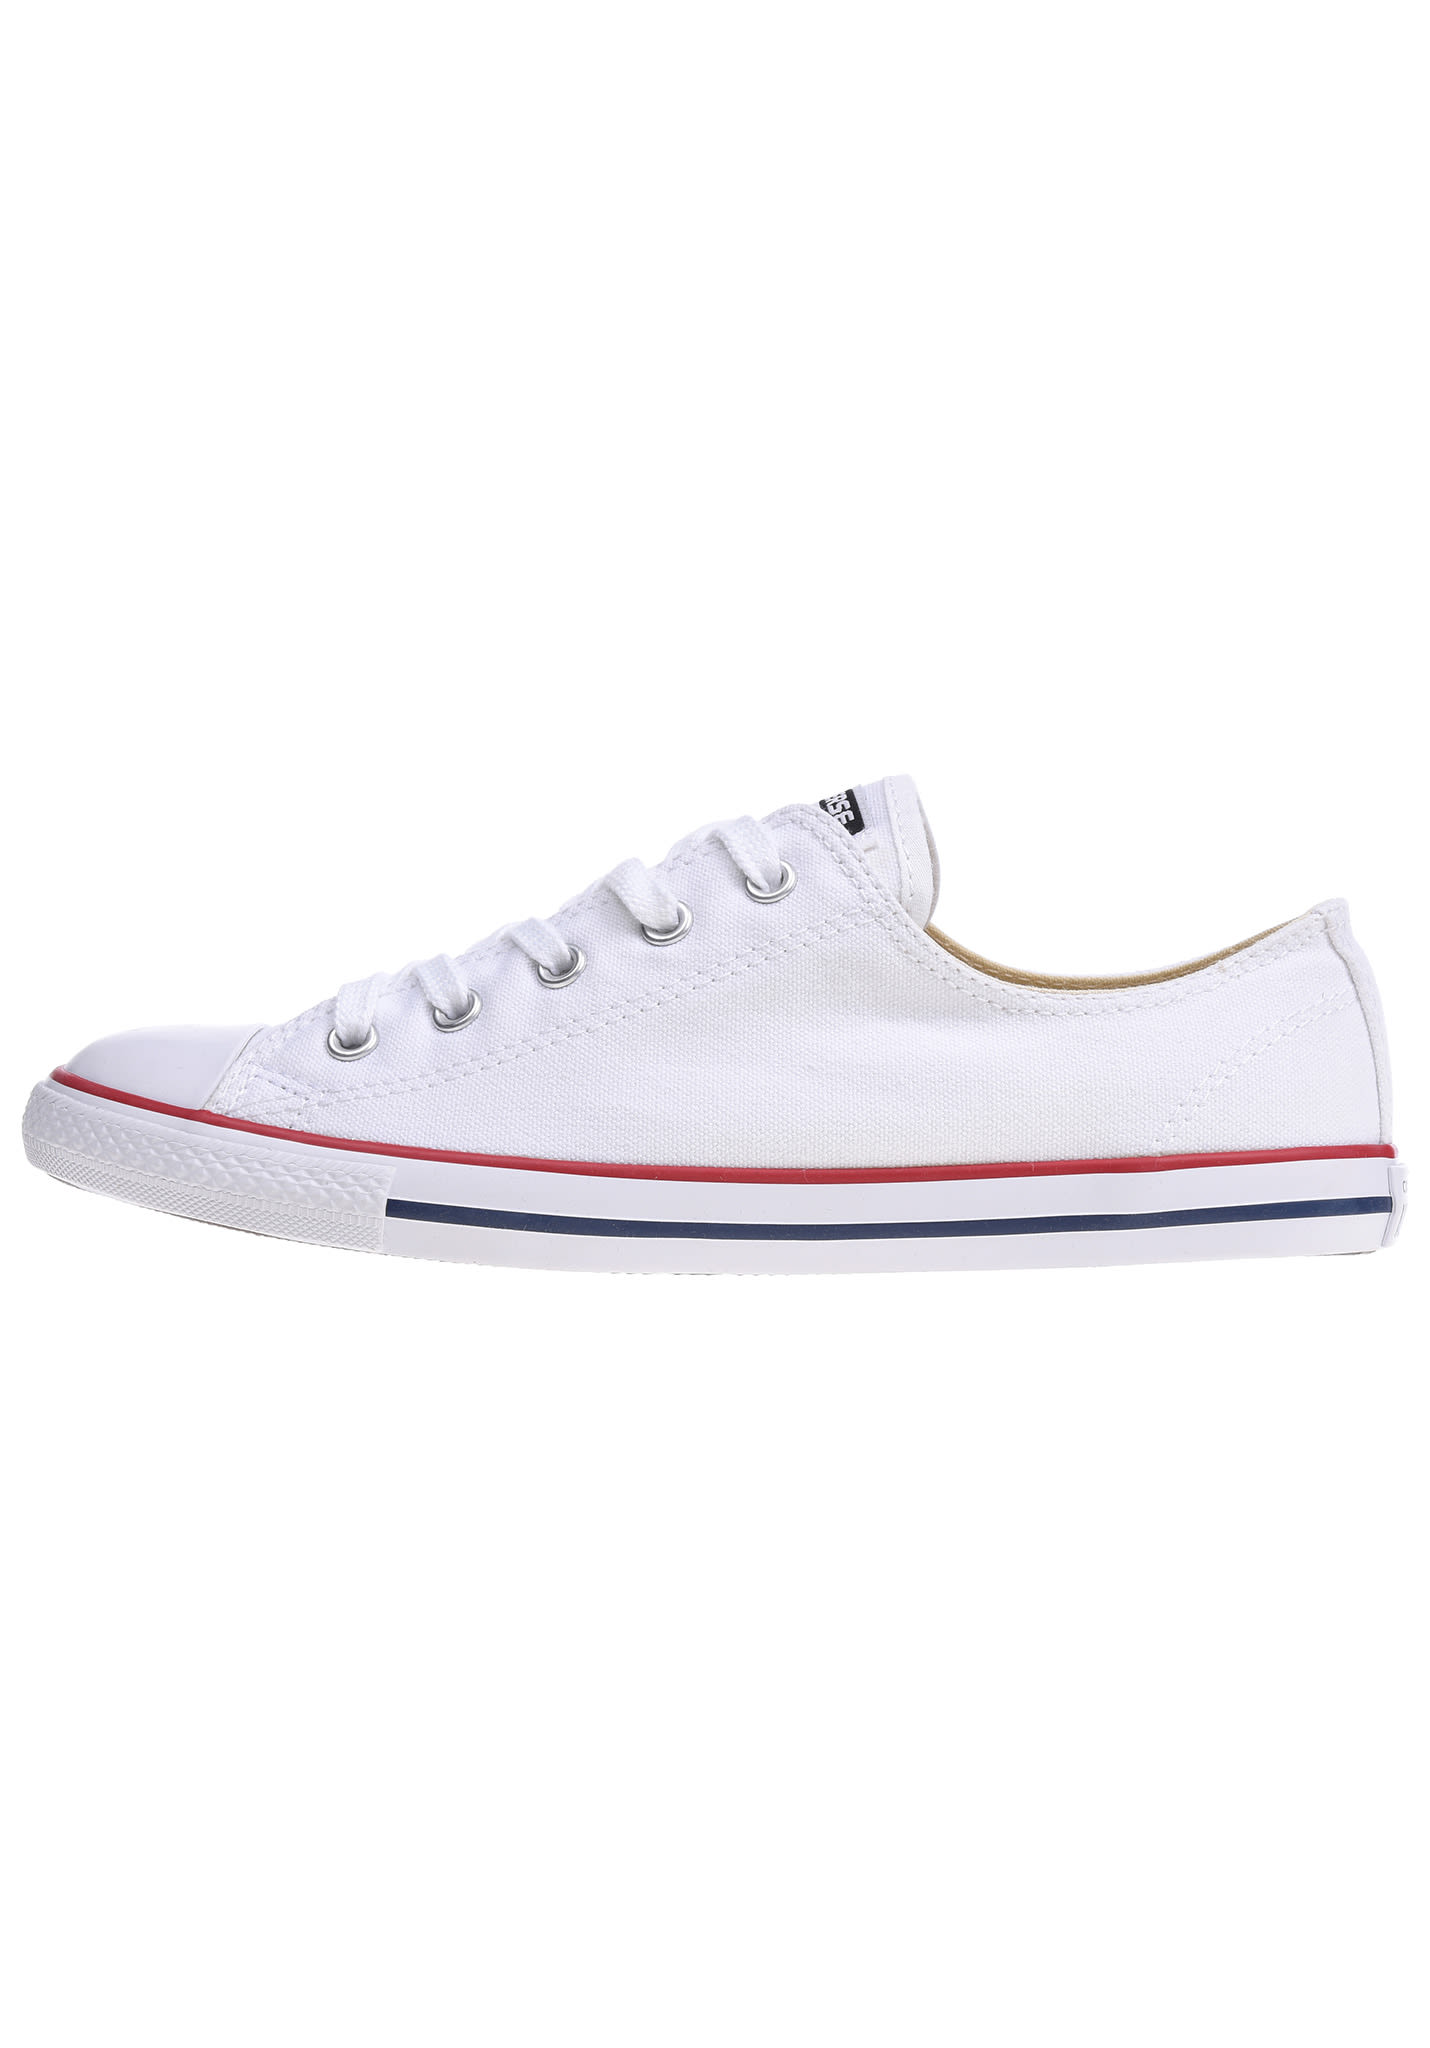 Converse CT All Star Dainty OX Damen-Sneaker Casino/Gold/White 40 S5Arm